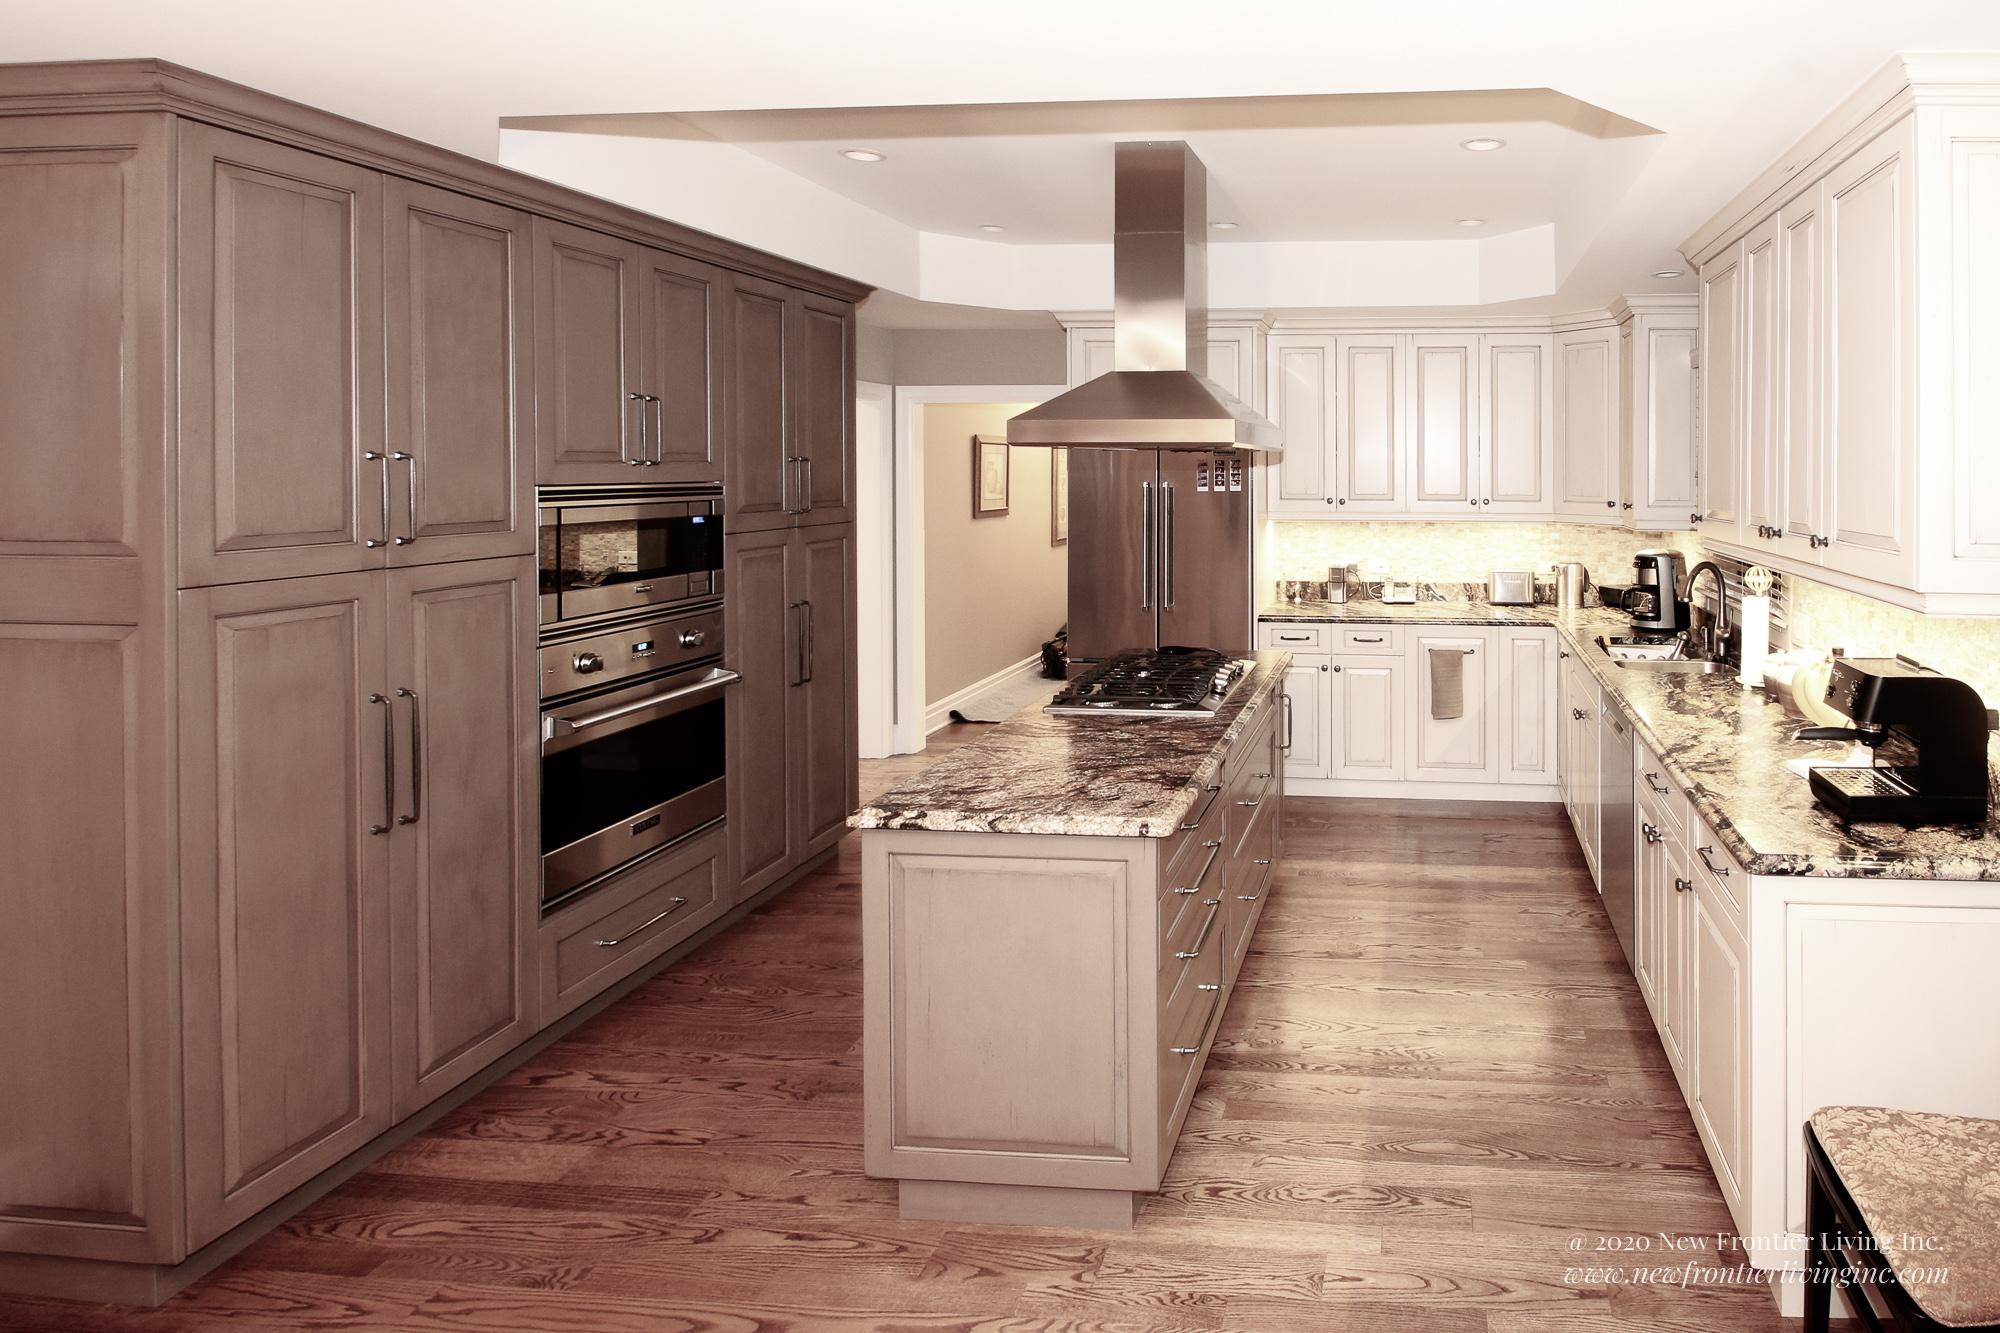 Custom light brown kitchen with island and cabinets, left side dark brown, right side light brown